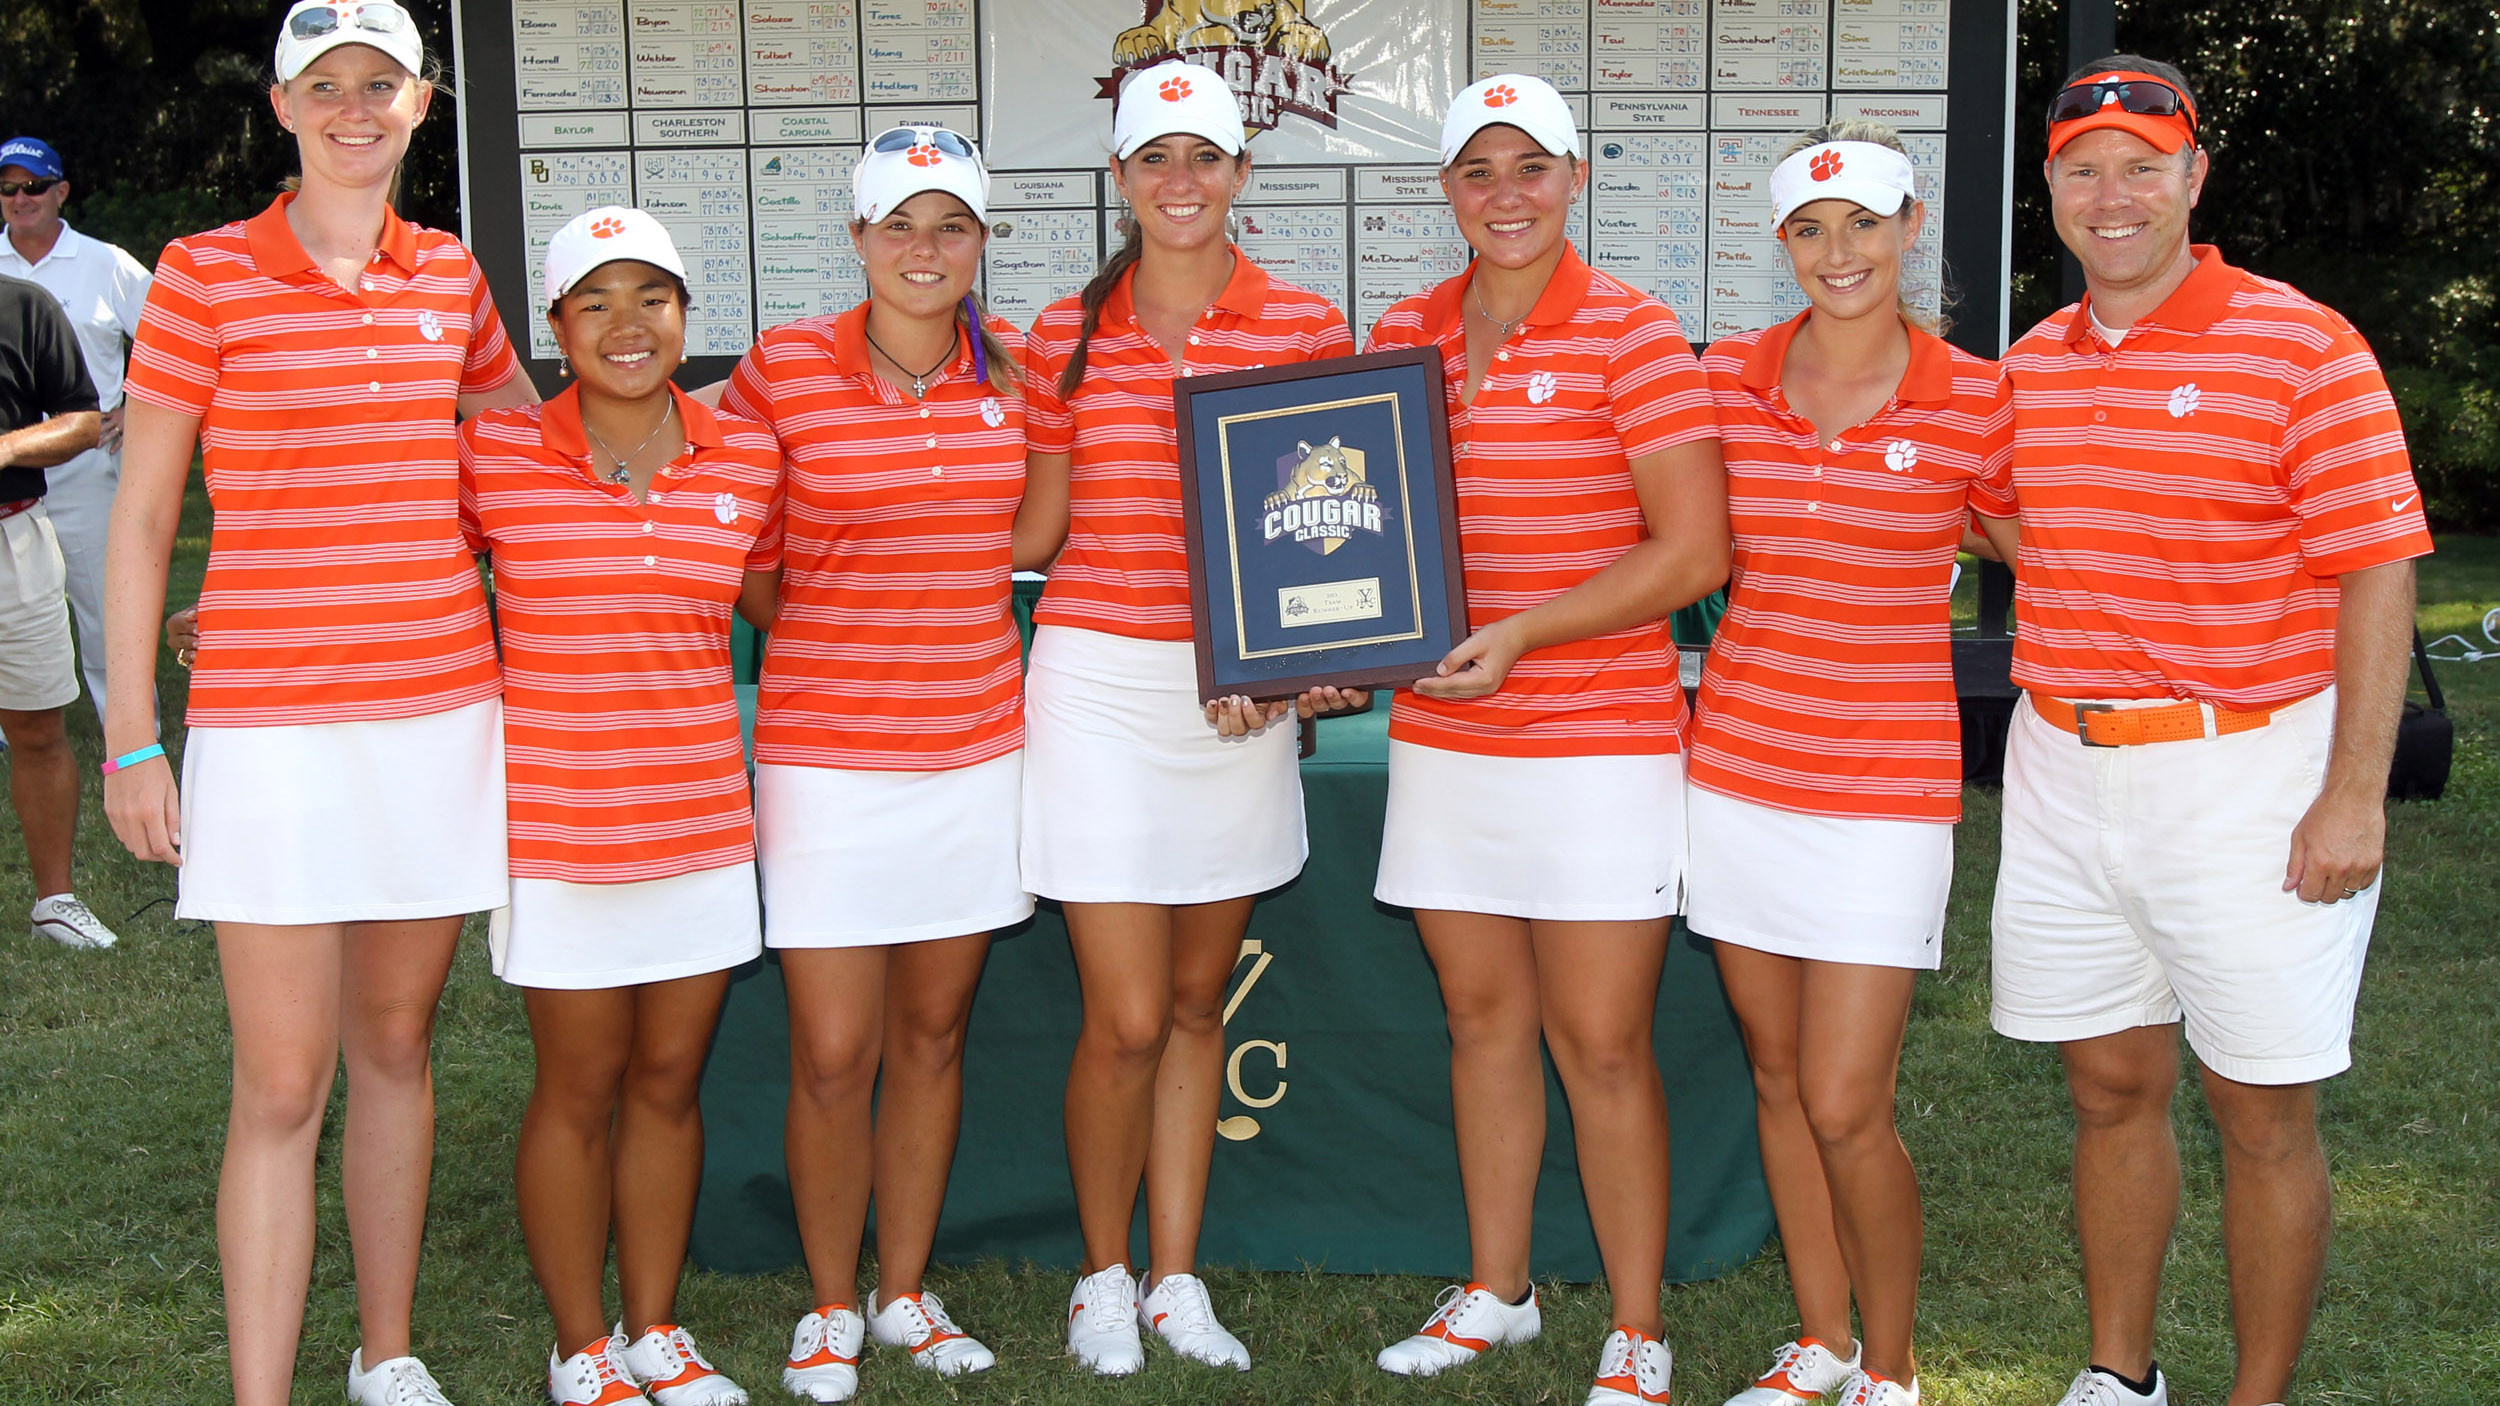 Clemson Finishes Second at Cougar Classic by One Shot